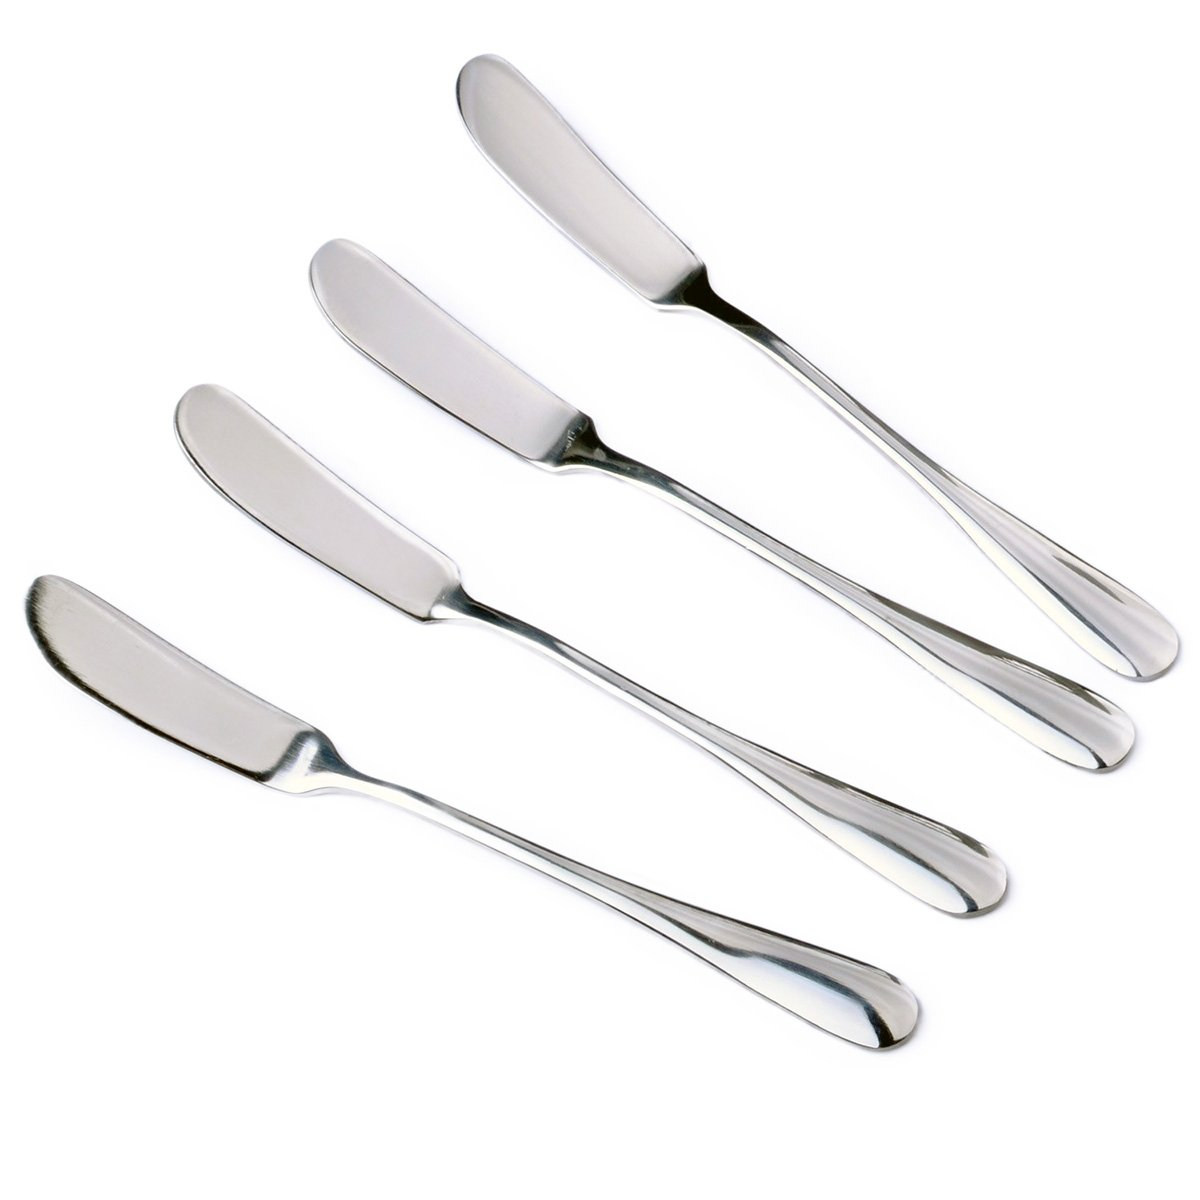 Zelta Stainless Steel Spreaders Silver - Packs Of 4